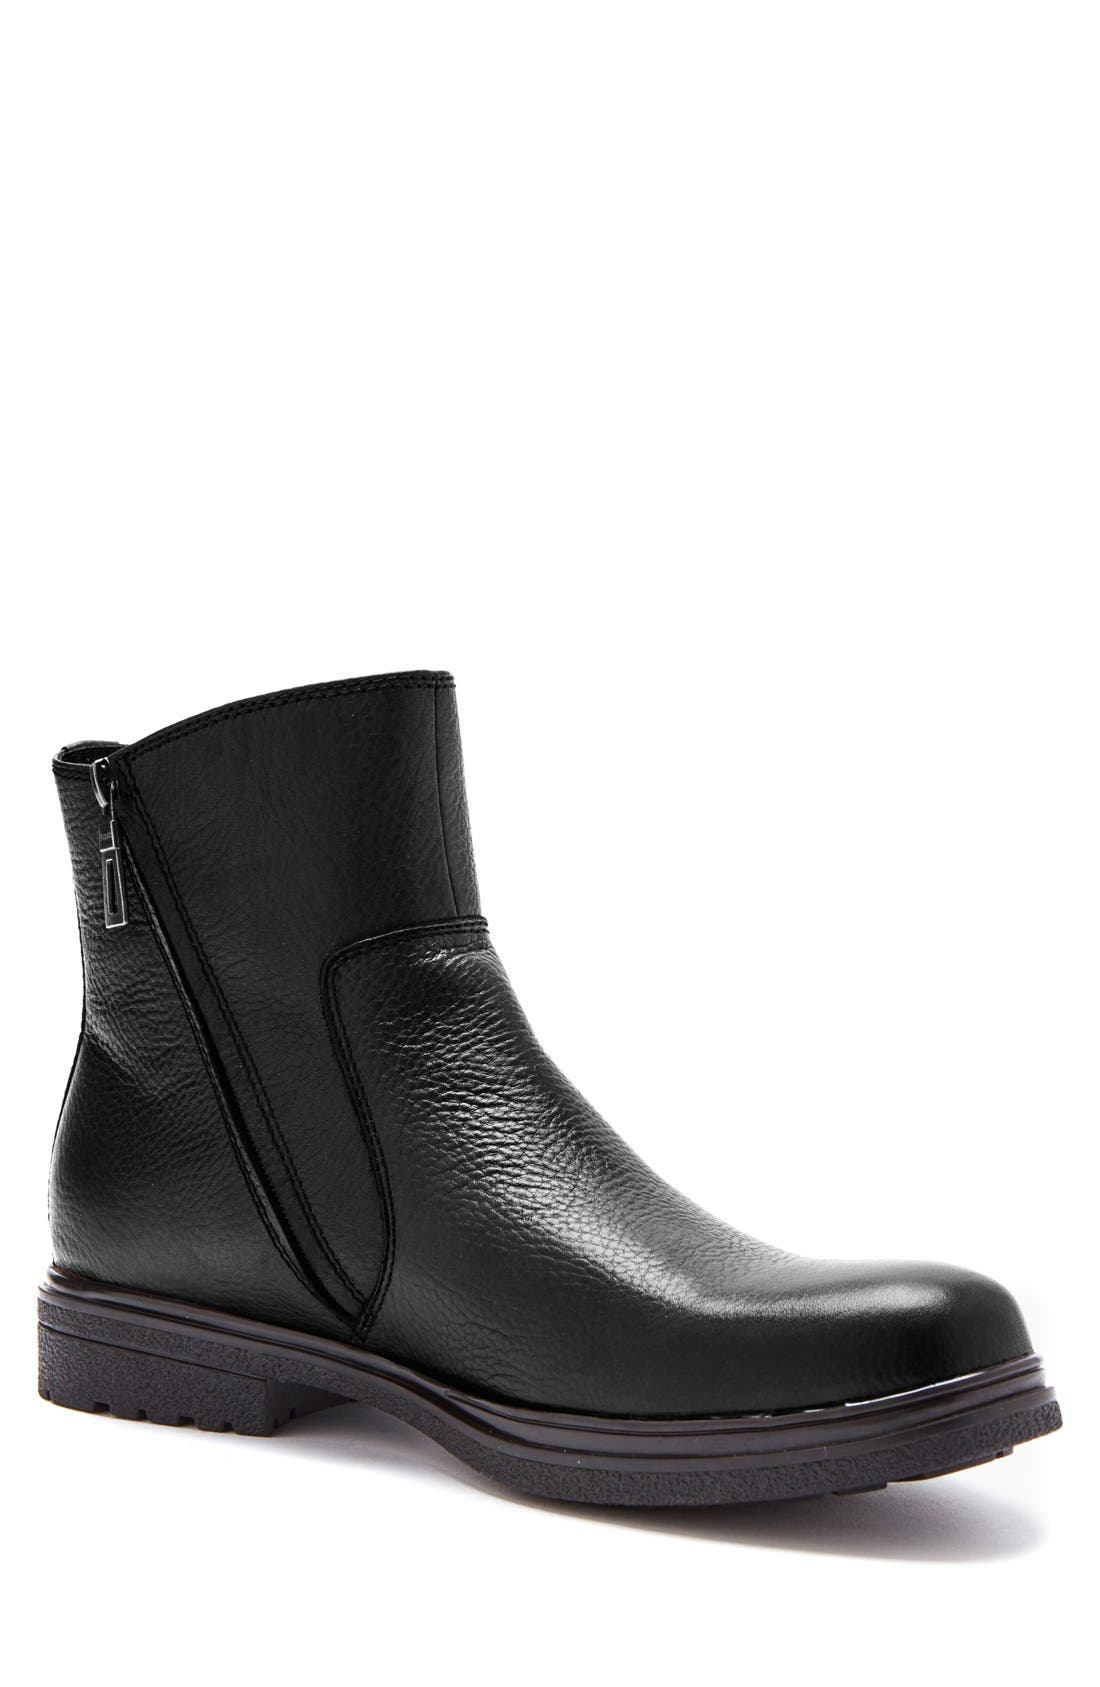 BLONDO Brawn Waterproof Zip Boot